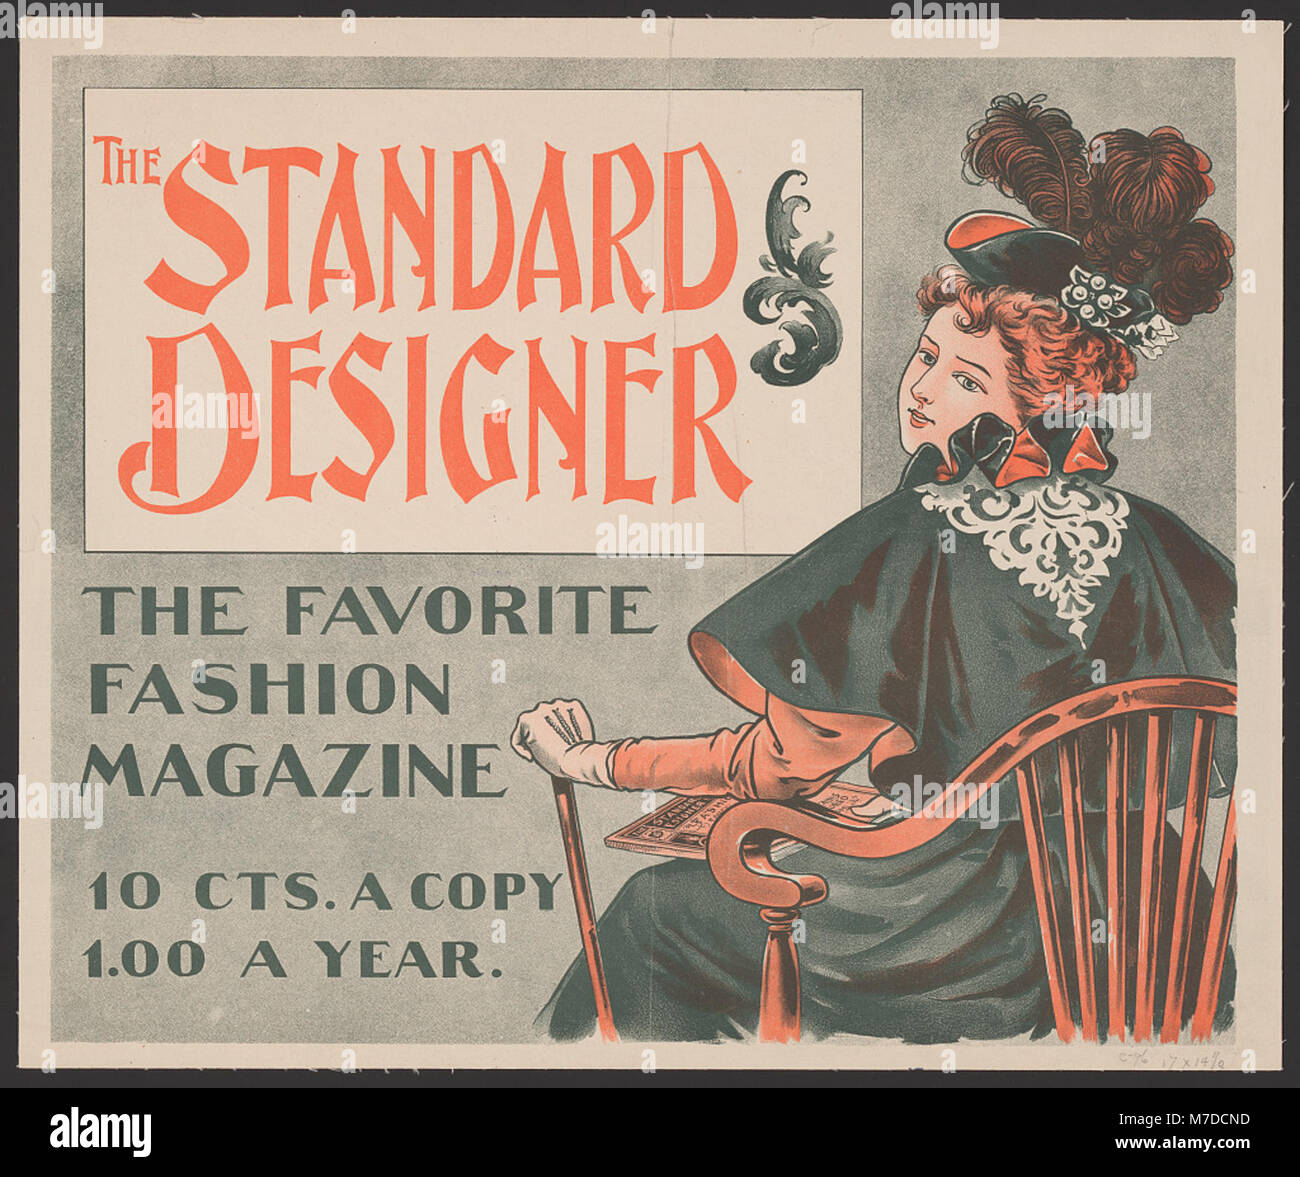 The Standard Designer, the favorite fashion magazine, 10 cts. a copy, 1.00 a year. LCCN2014646773 Stock Photo